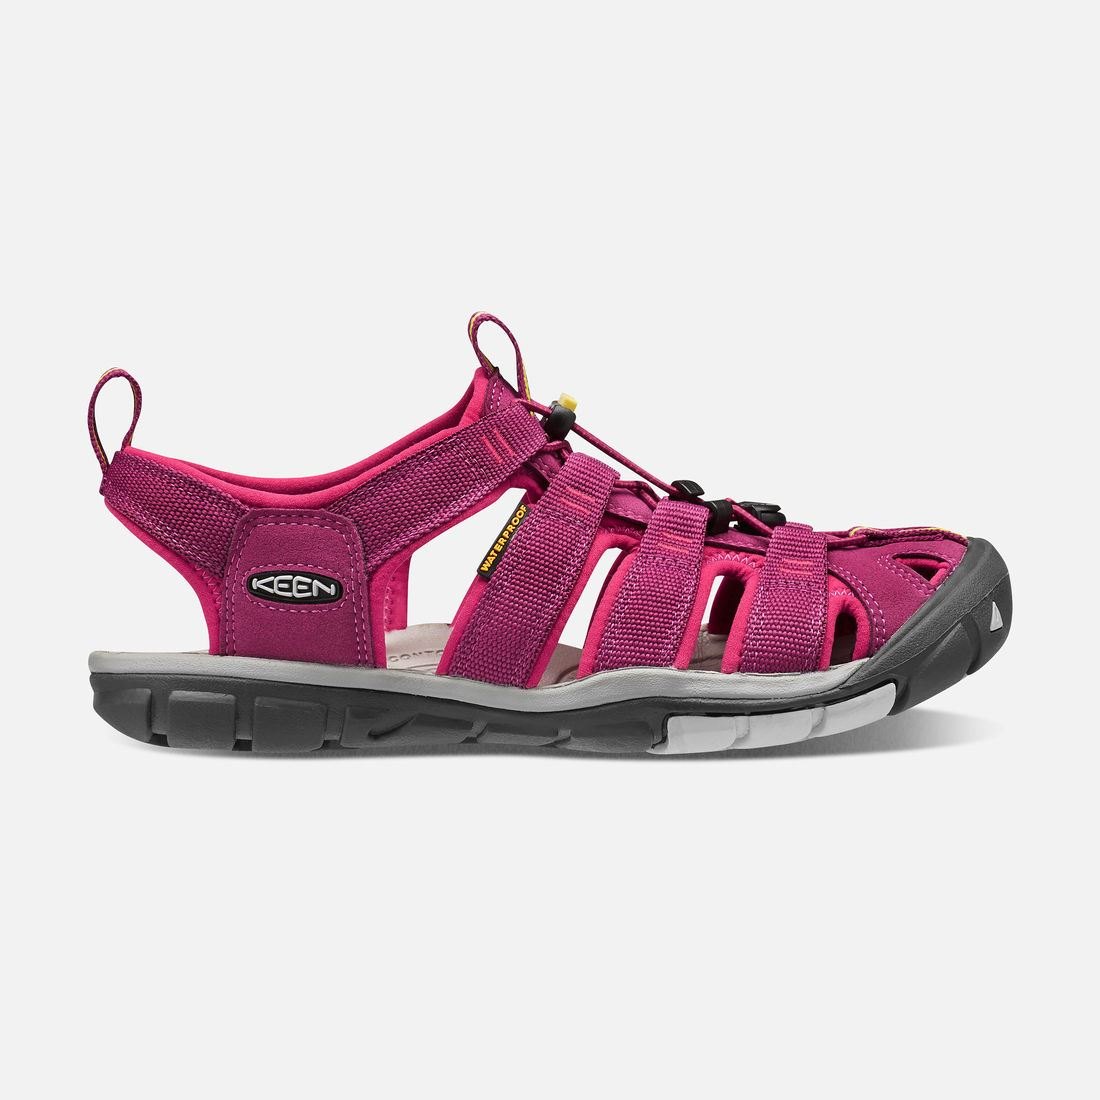 KEEN Women's Clearwater CNX Sandals Anemone/Acacia